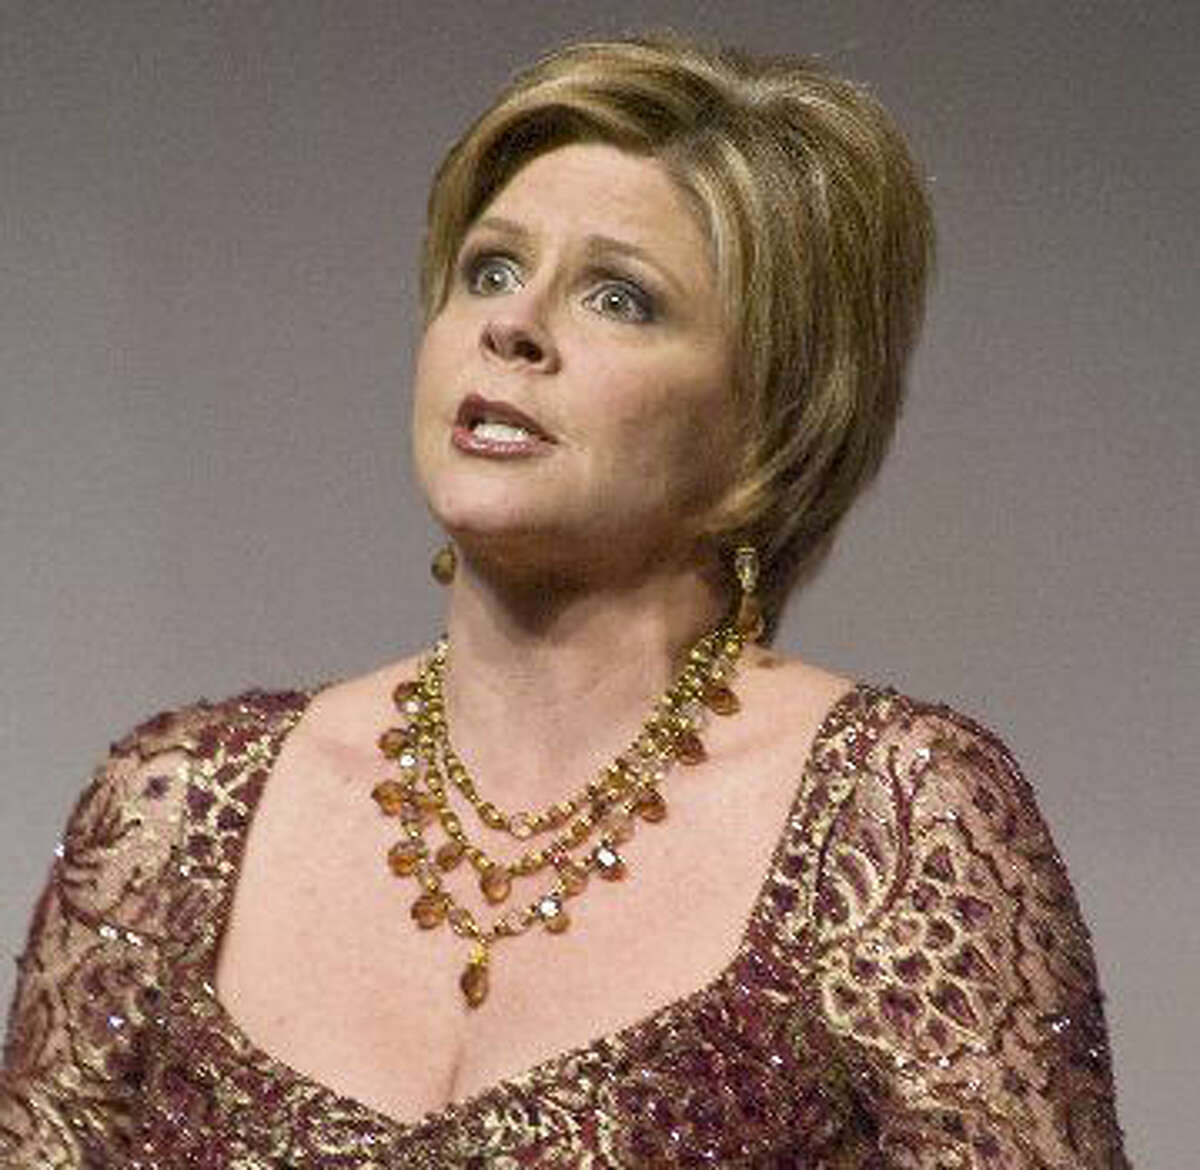 Susan Graham, mezzo soprano, and Lee High graduate, is to perform August 29 at the Wagner Noel Performing Arts Center. Graham will be singing in the Midland Opera Theatre's Homecoming Concert, which will feature established opera singers, like Graham, who are from the Permian Basin